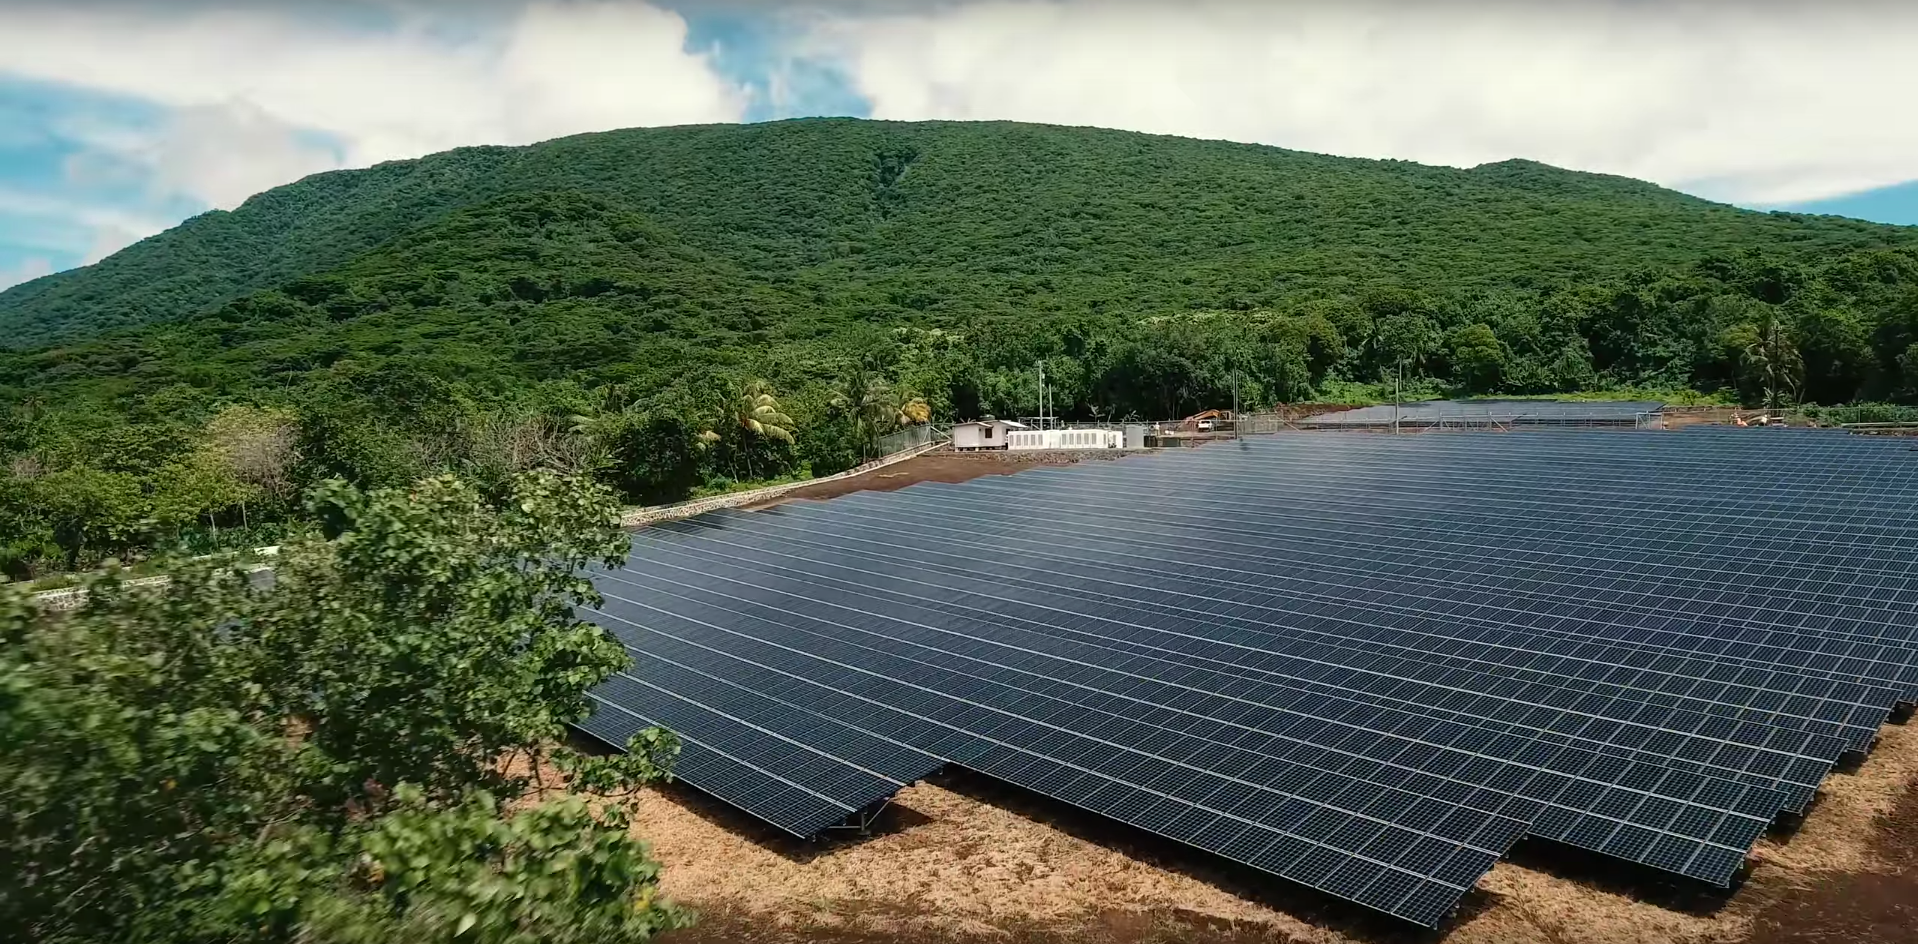 In Island microgrid with solar and energy storage from Tesla and SolarCity